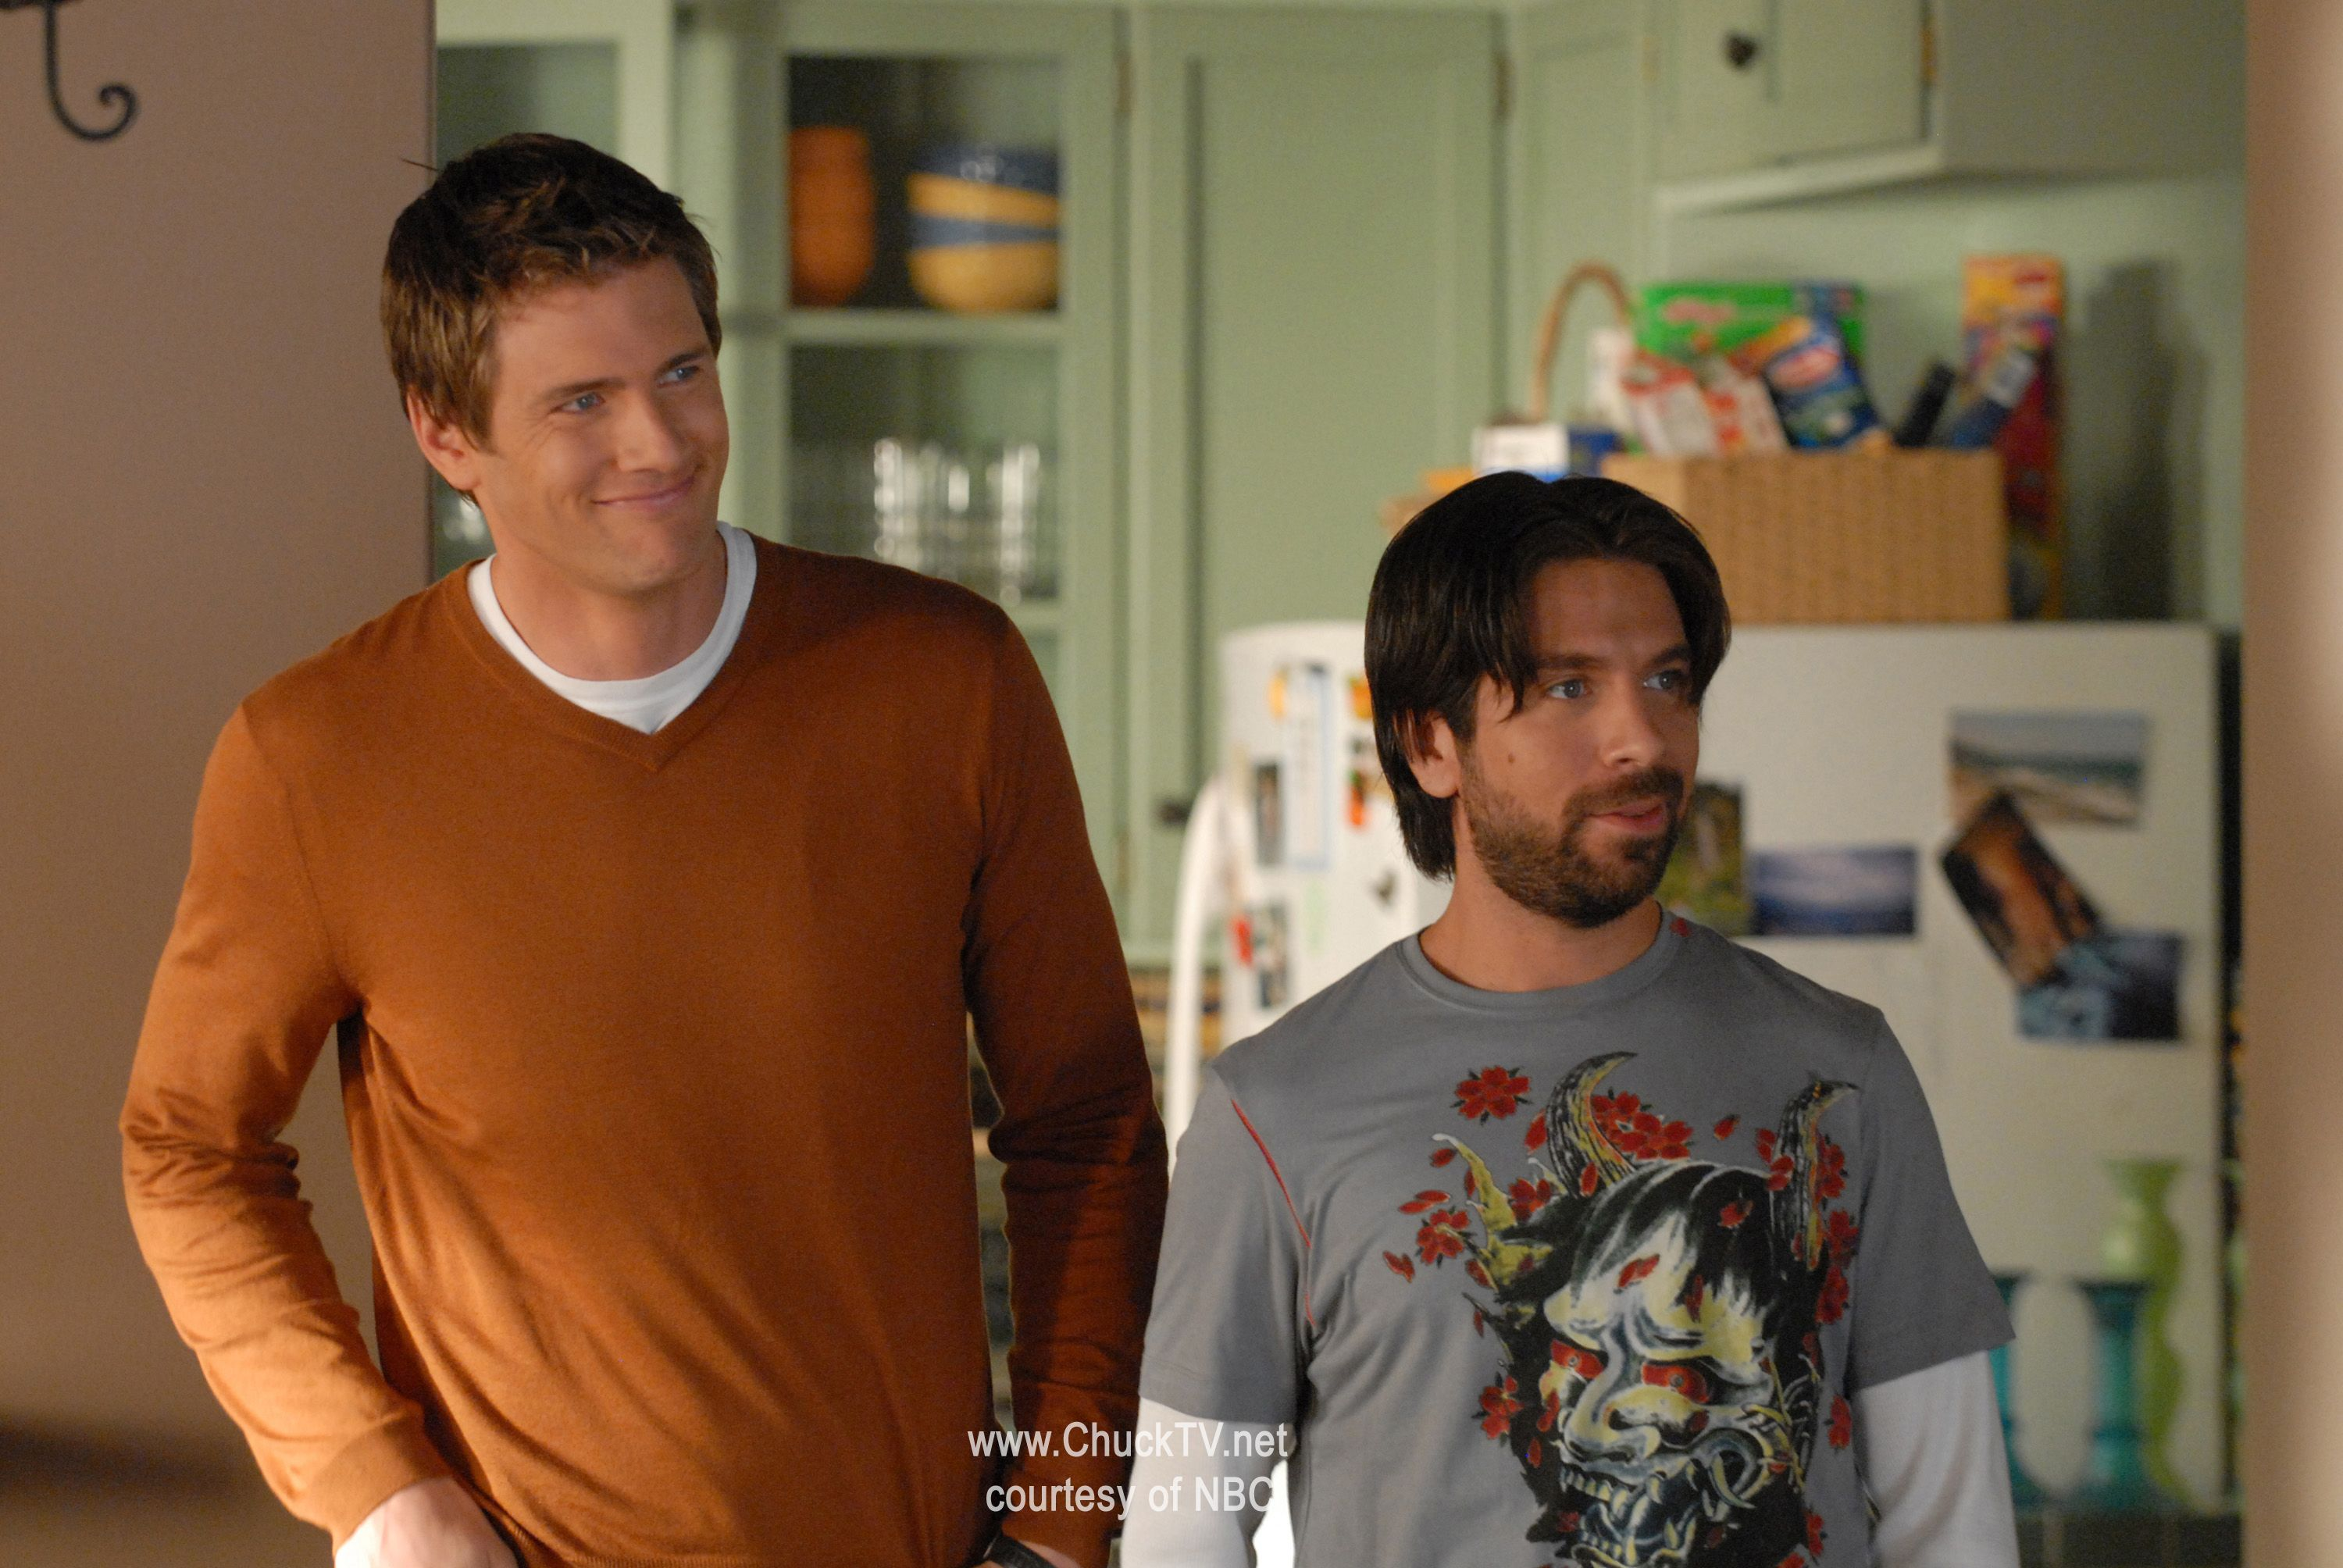 Ryan Mcpartlin As Captain Awesome And Joshua Gomez As Morgan Grimes Chuck Season 1 Chucks Zachary Levi This is joshua gomez of chuck by bailey applebaum on vimeo, the home for high quality videos and the people who love them. ryan mcpartlin as captain awesome and